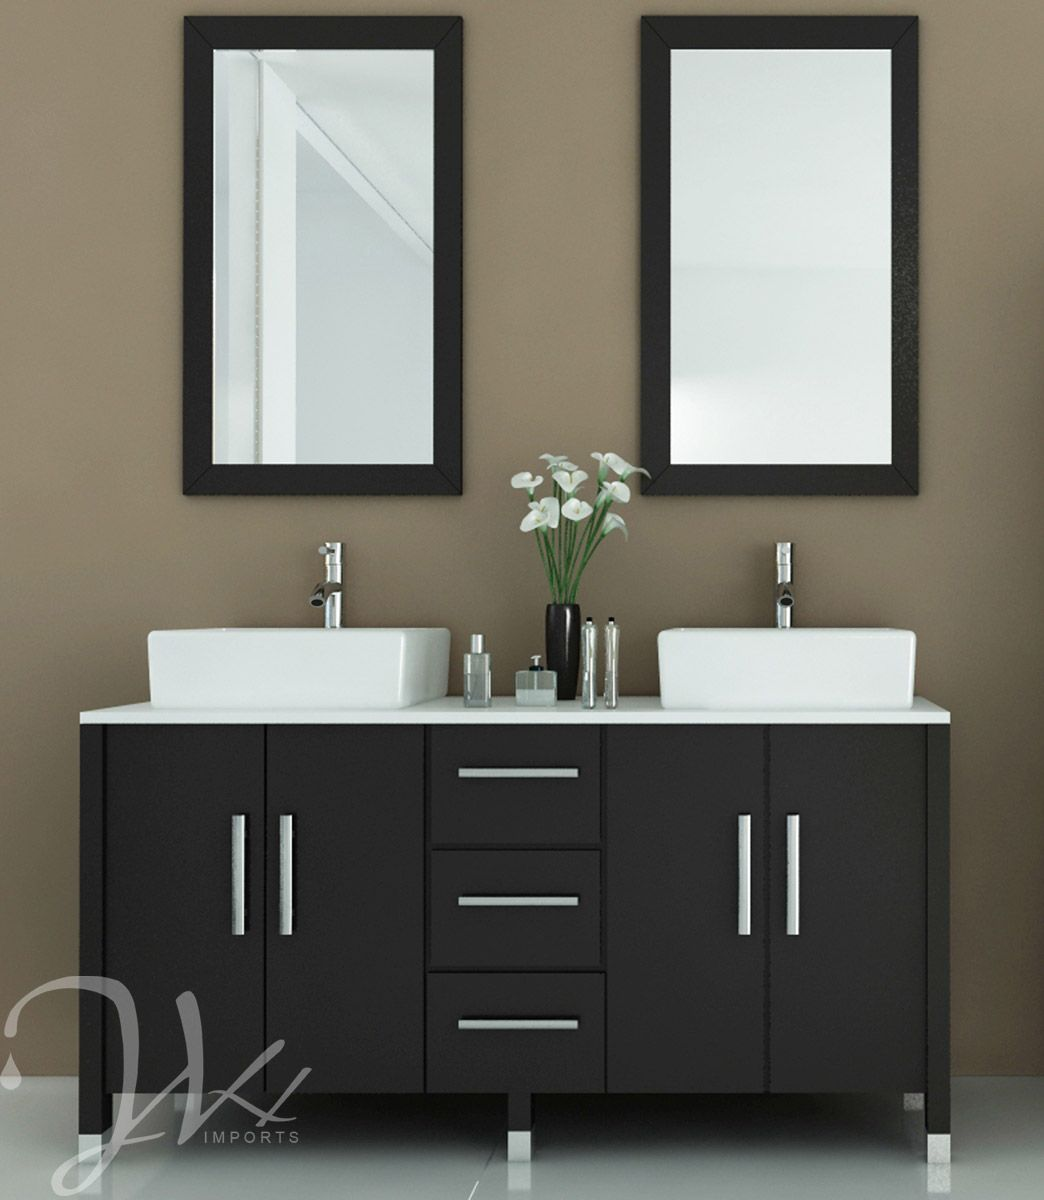 White Bathroom Vanity Ideas 59 Quot Sirius Double Bathroom Vanity For The Home